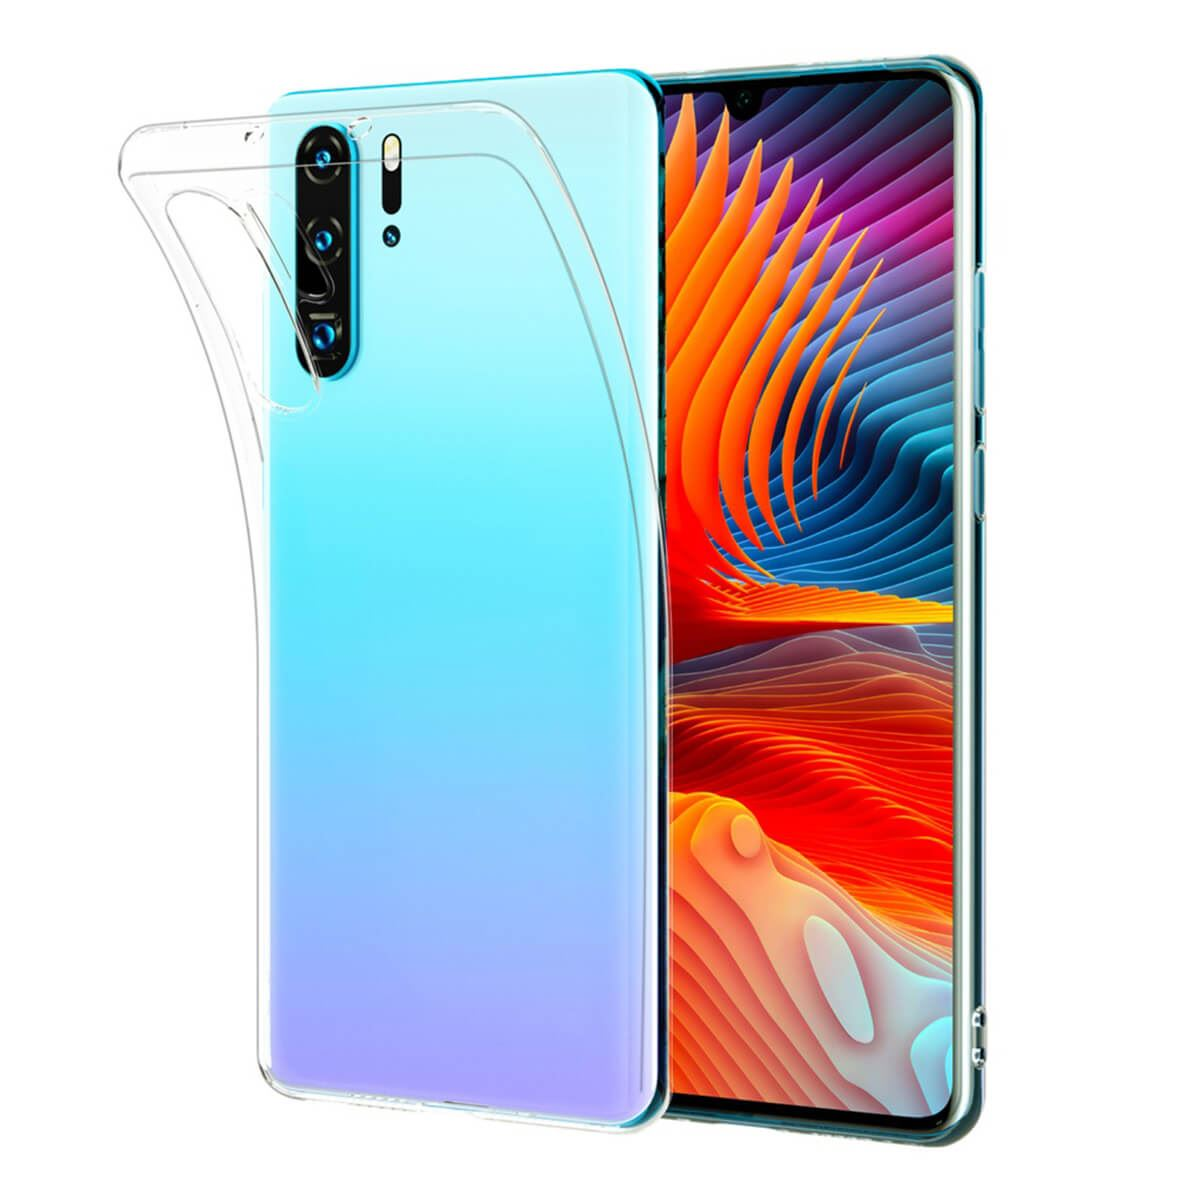 Case-For-Huawei-P20-Pro-P-Smart-Shockproof-Silicone-Protective-Clear-Gel-Cover thumbnail 6